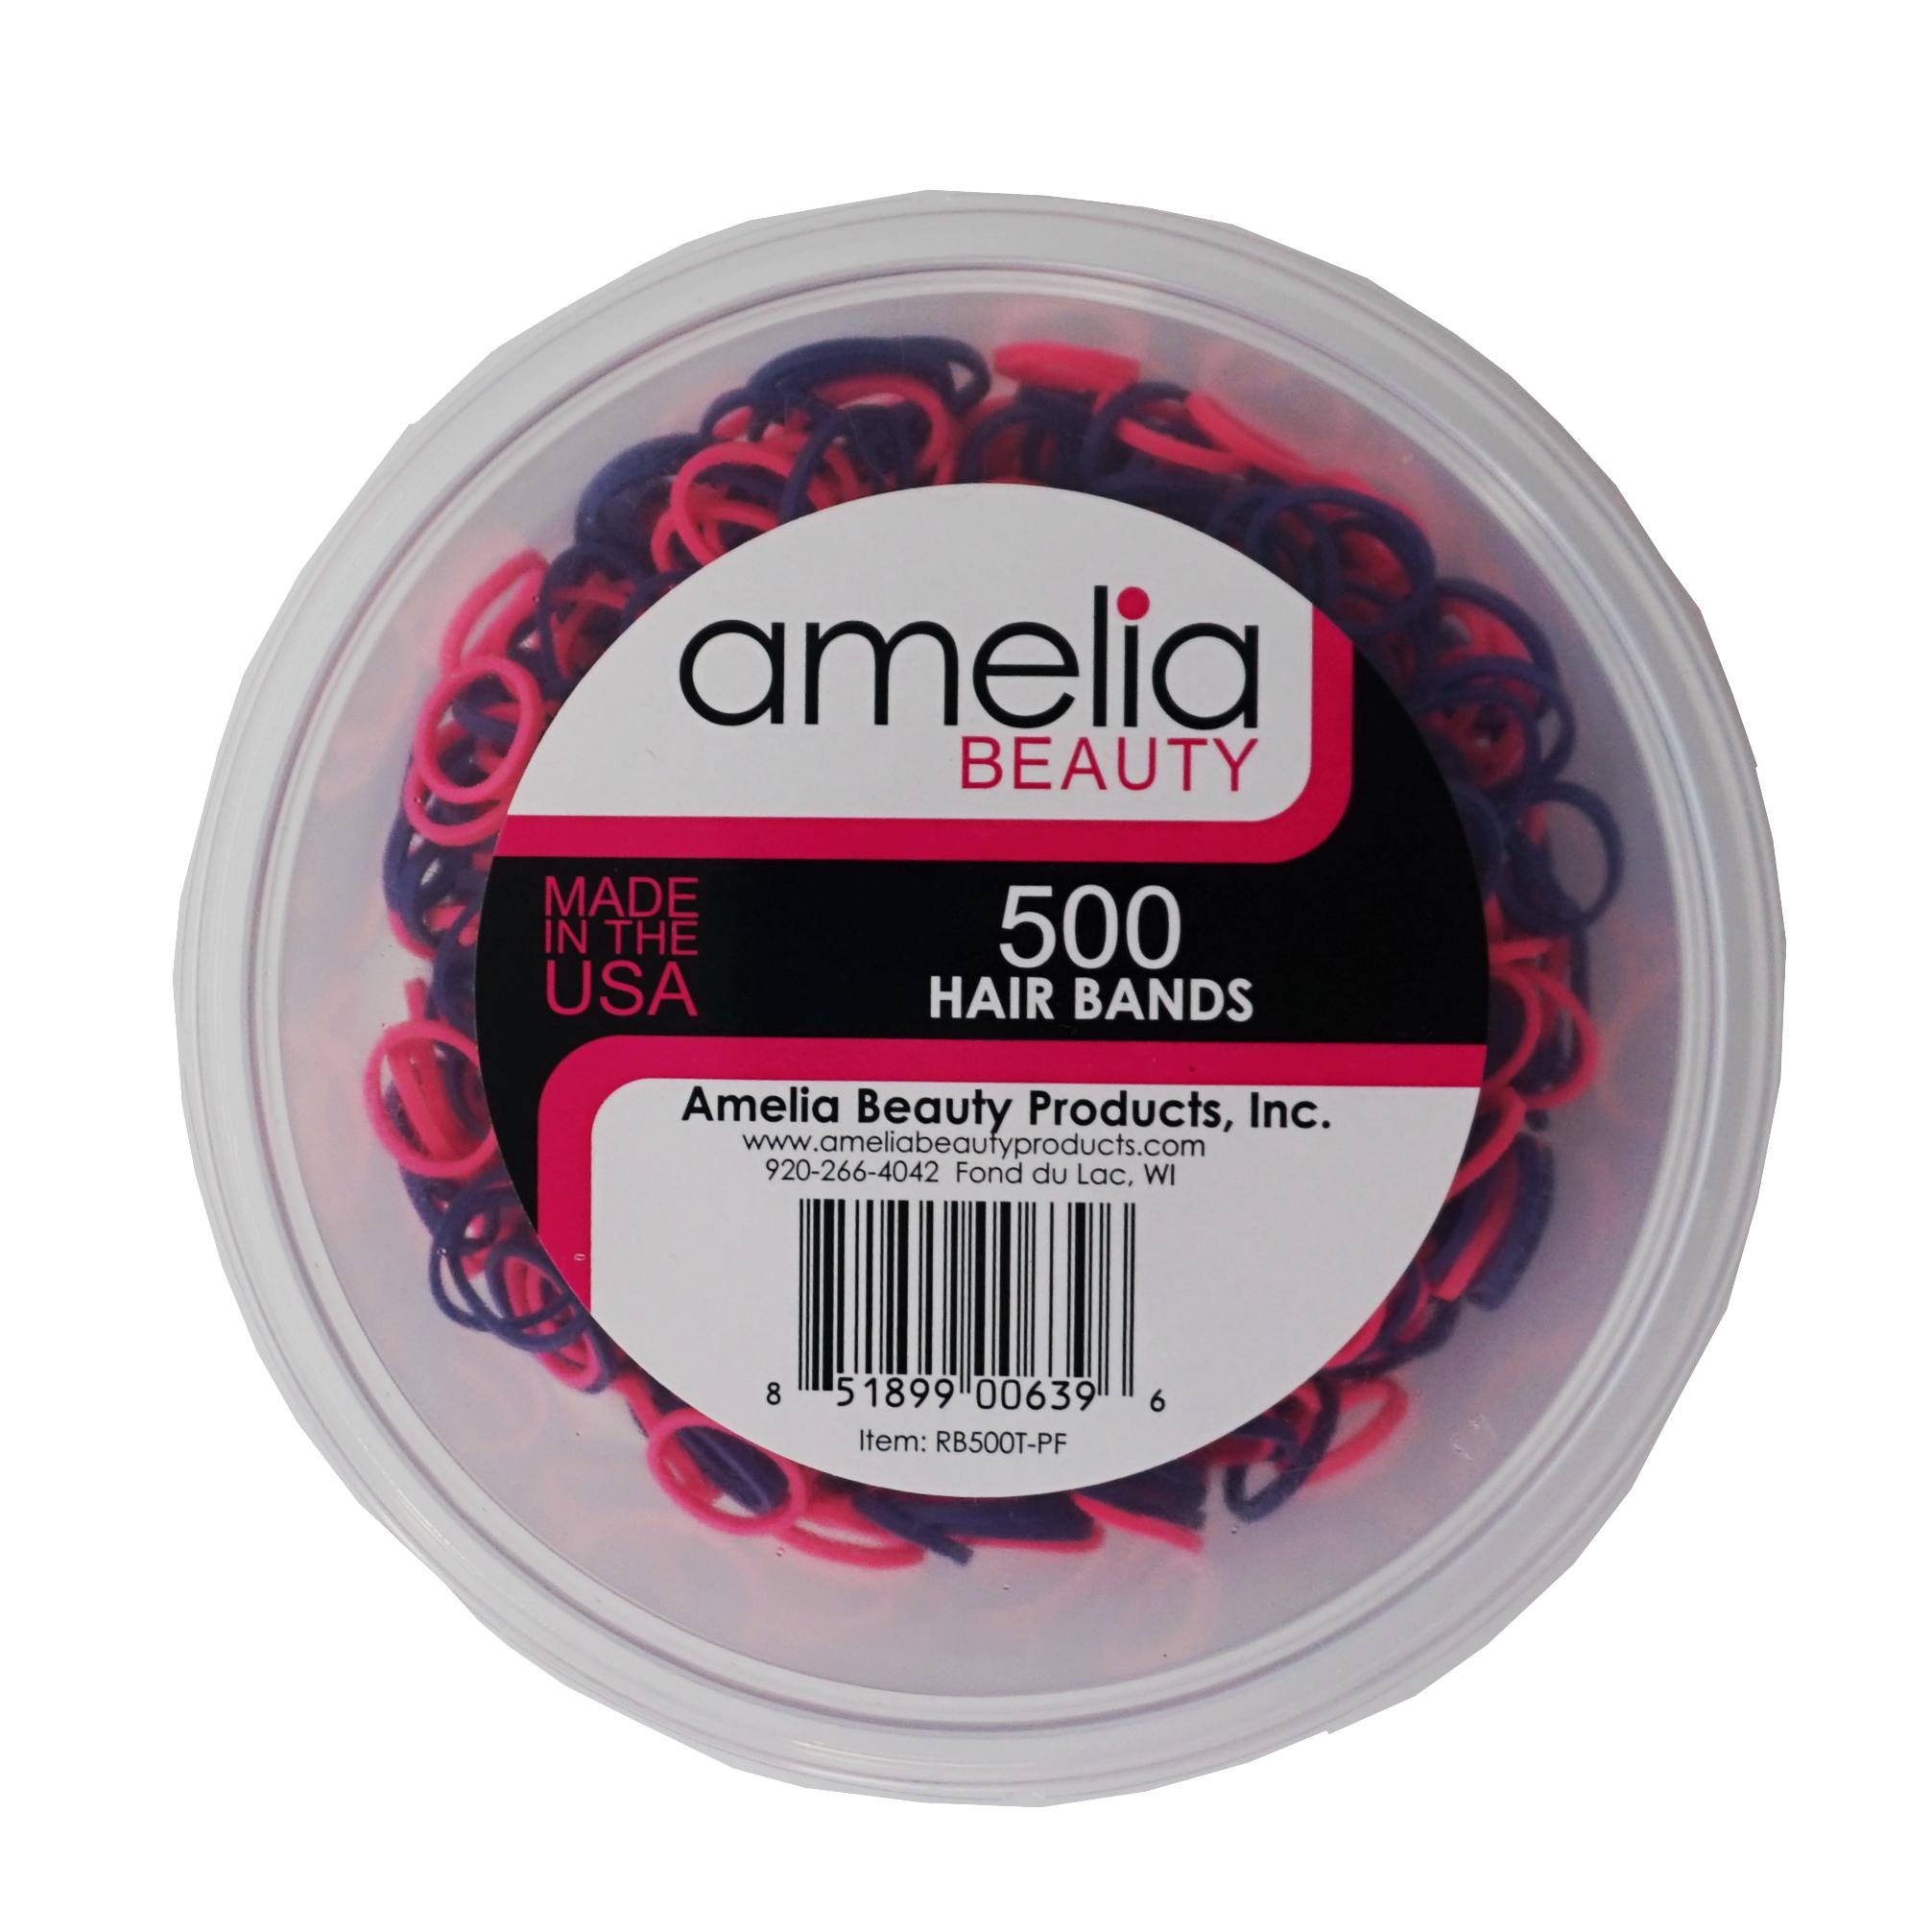 500 Count Rubber Bands in Re-closable Container for Ponytails and Braids (Purple/Fuchsia)